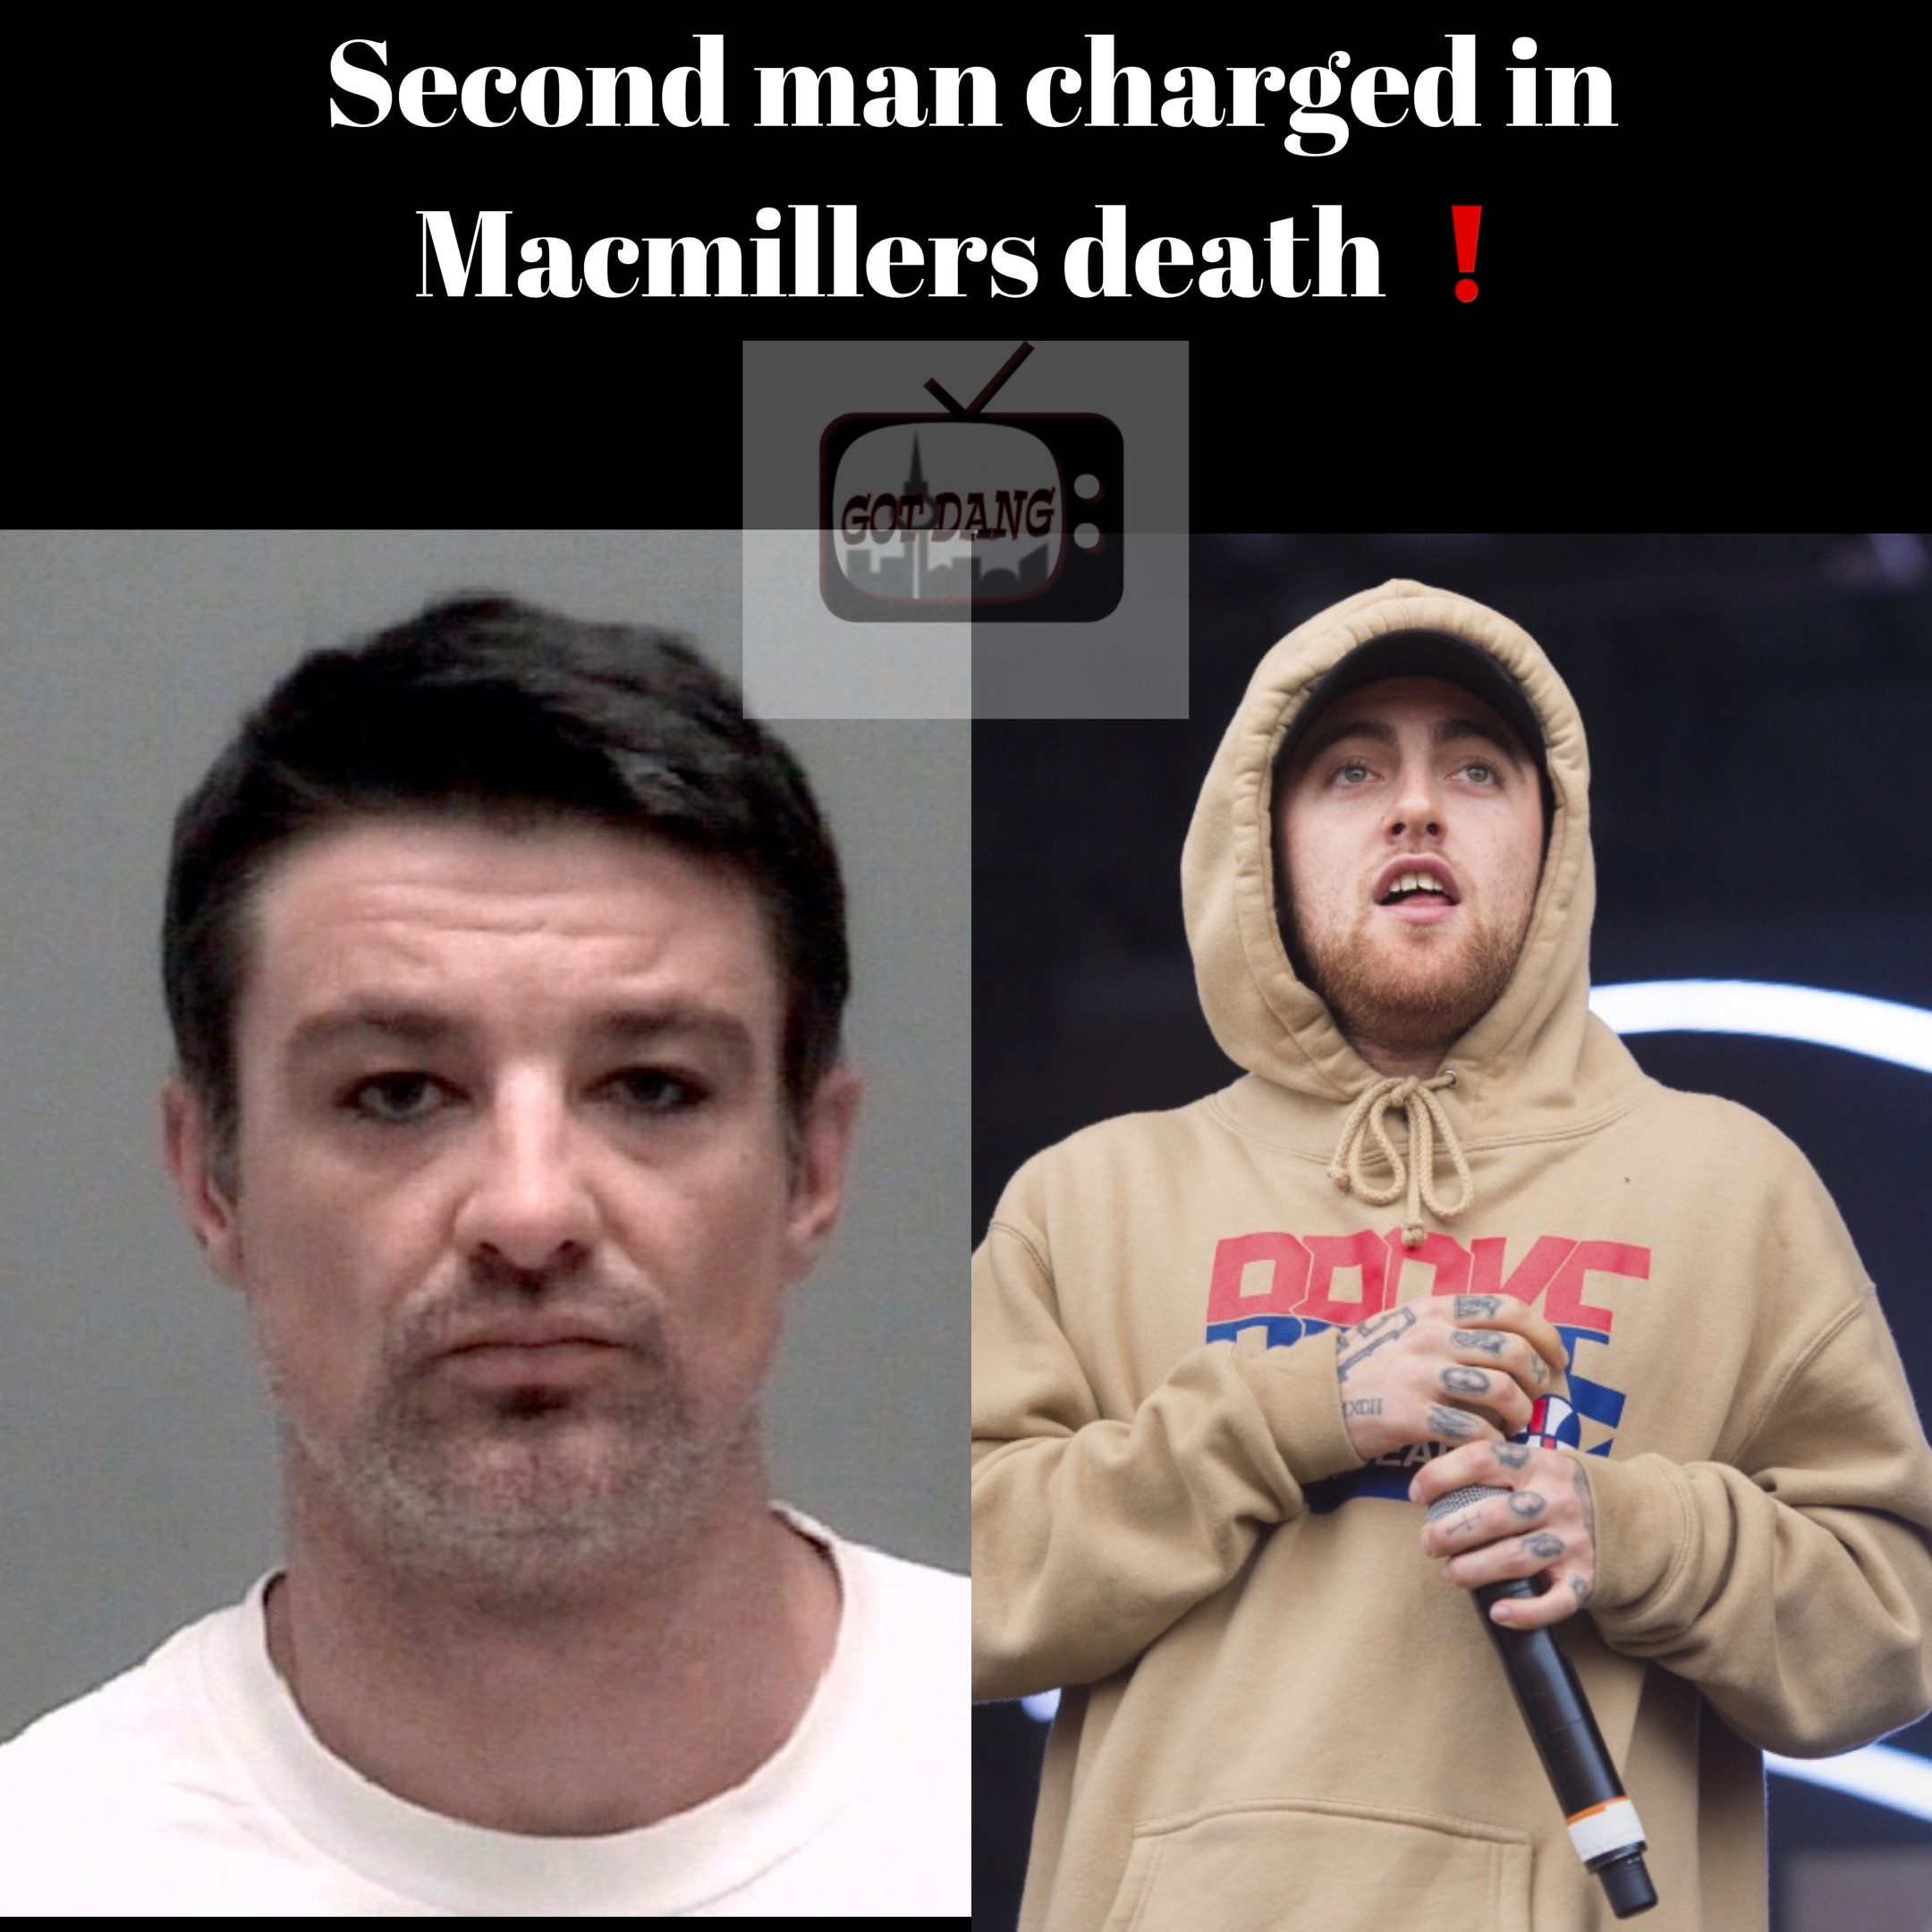 A second man has been charged in Mac millers death